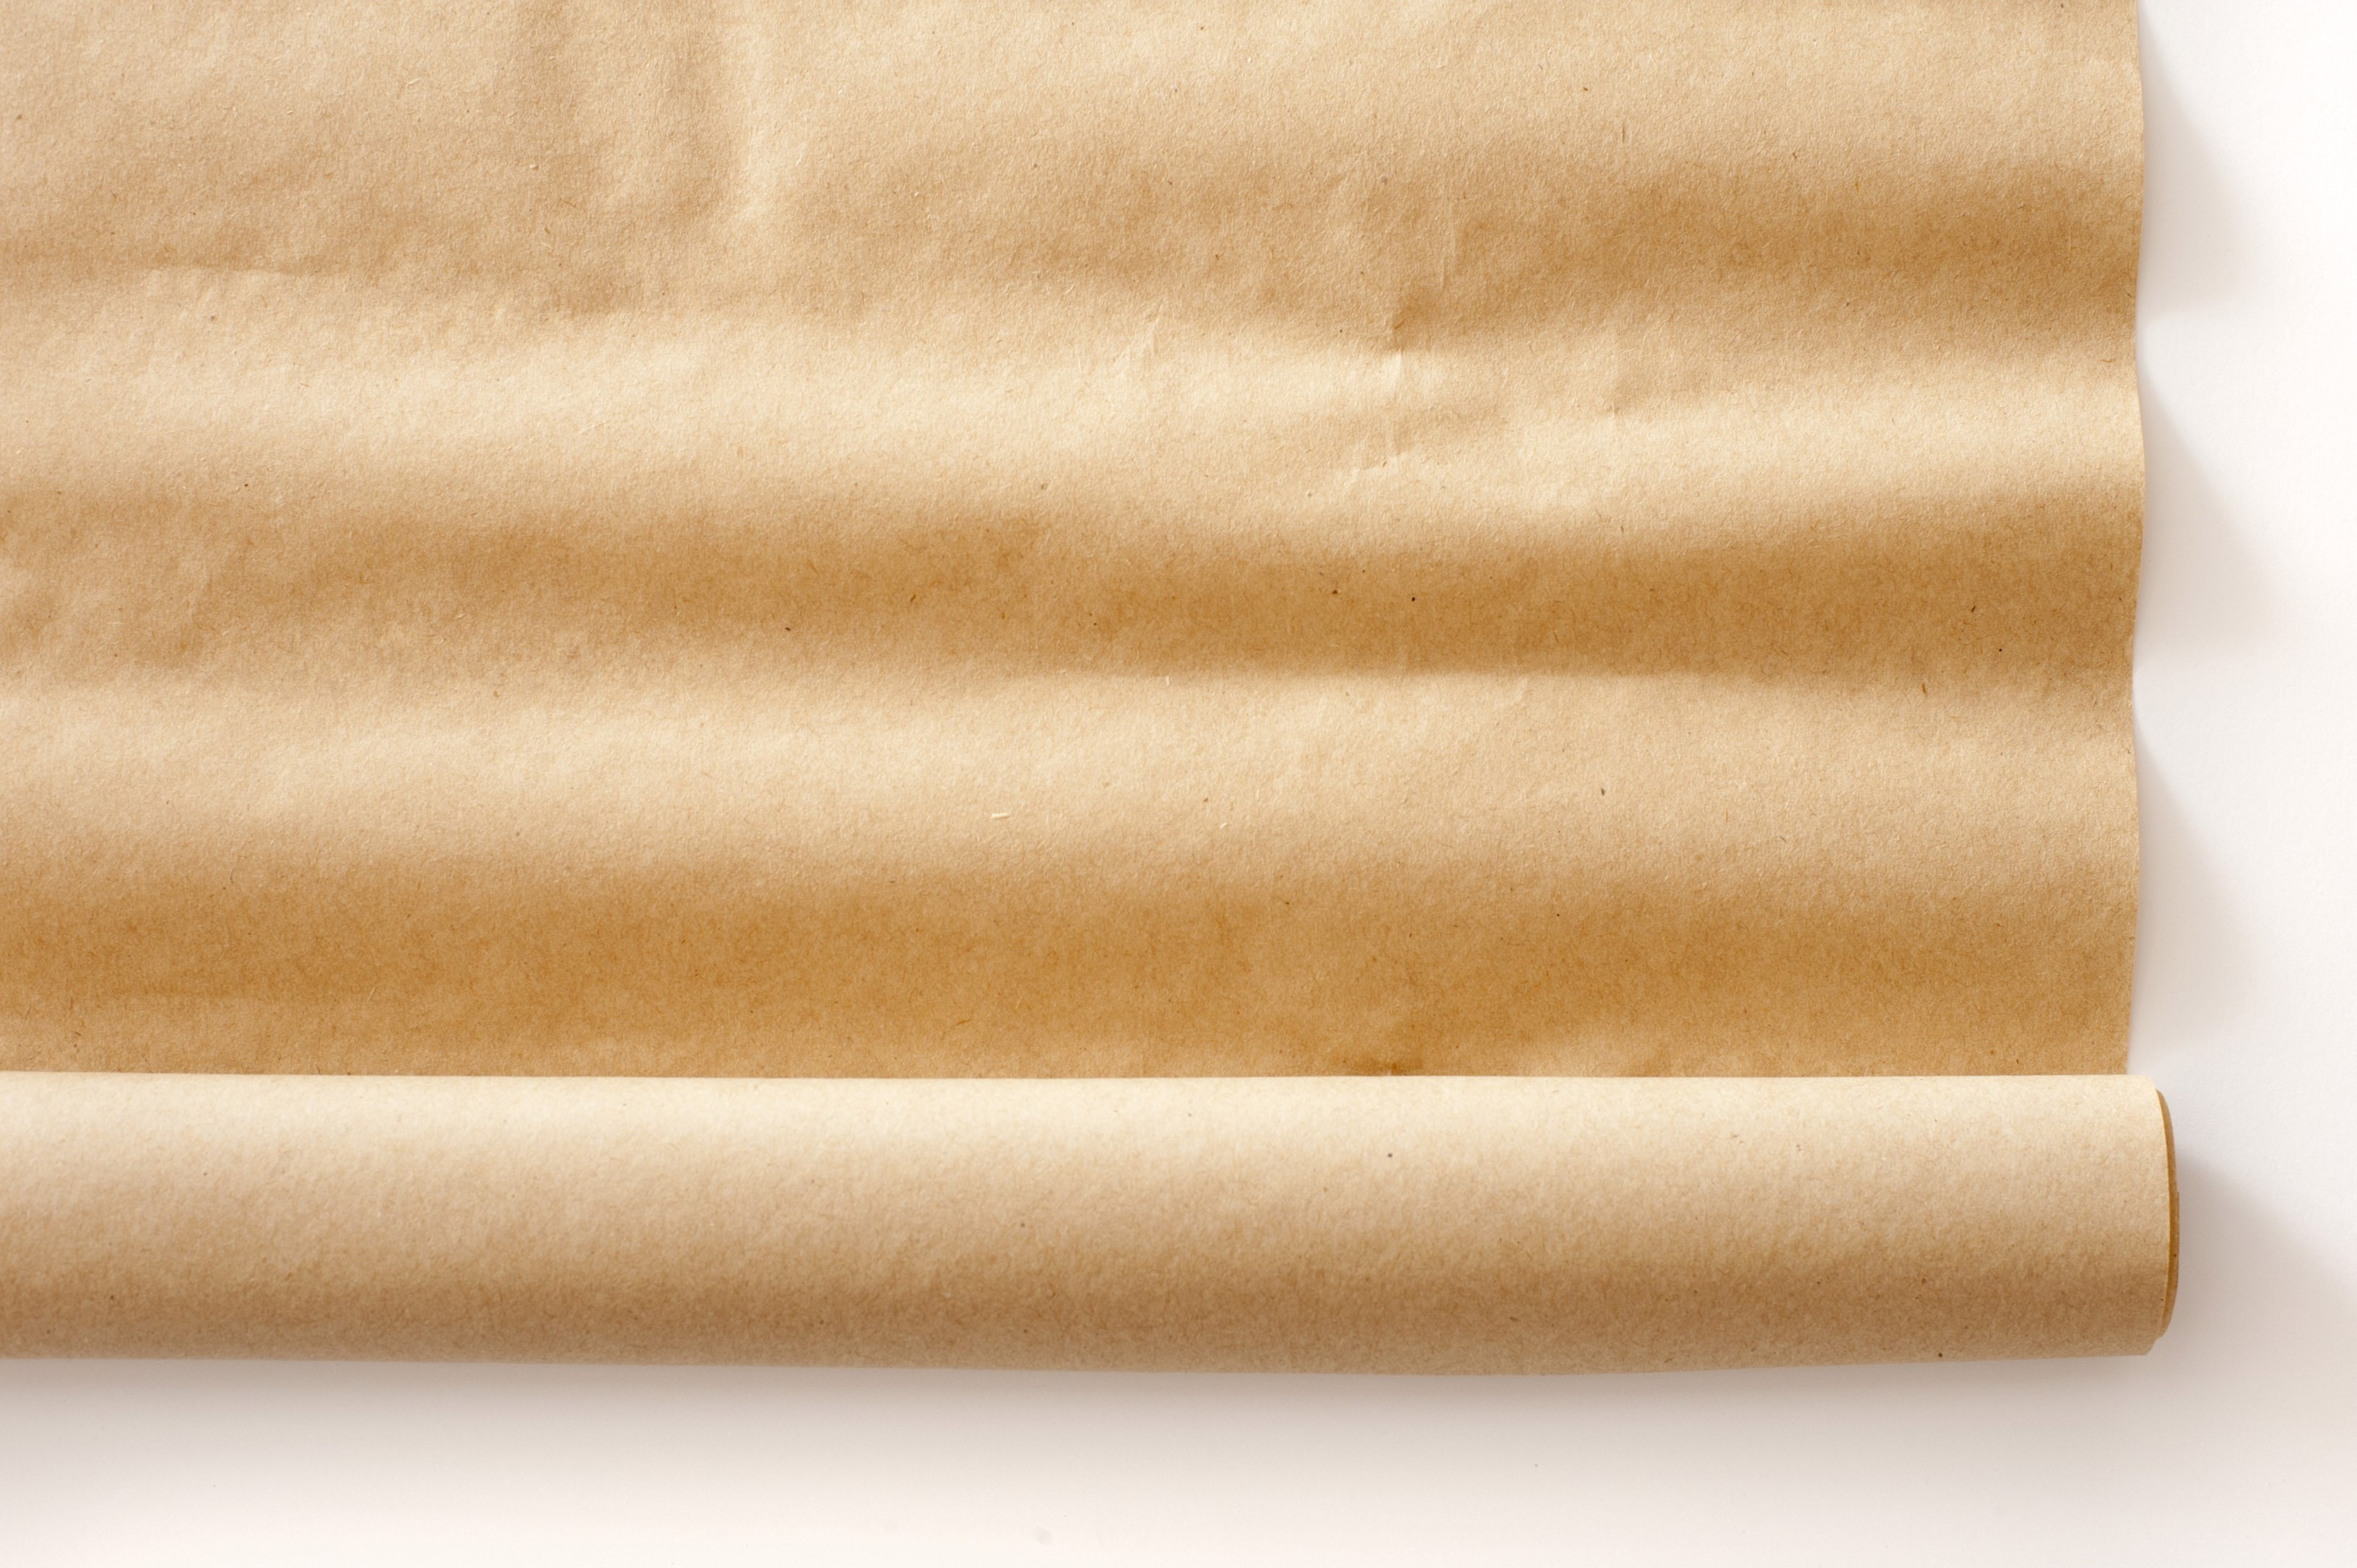 a roll of brown packing paper